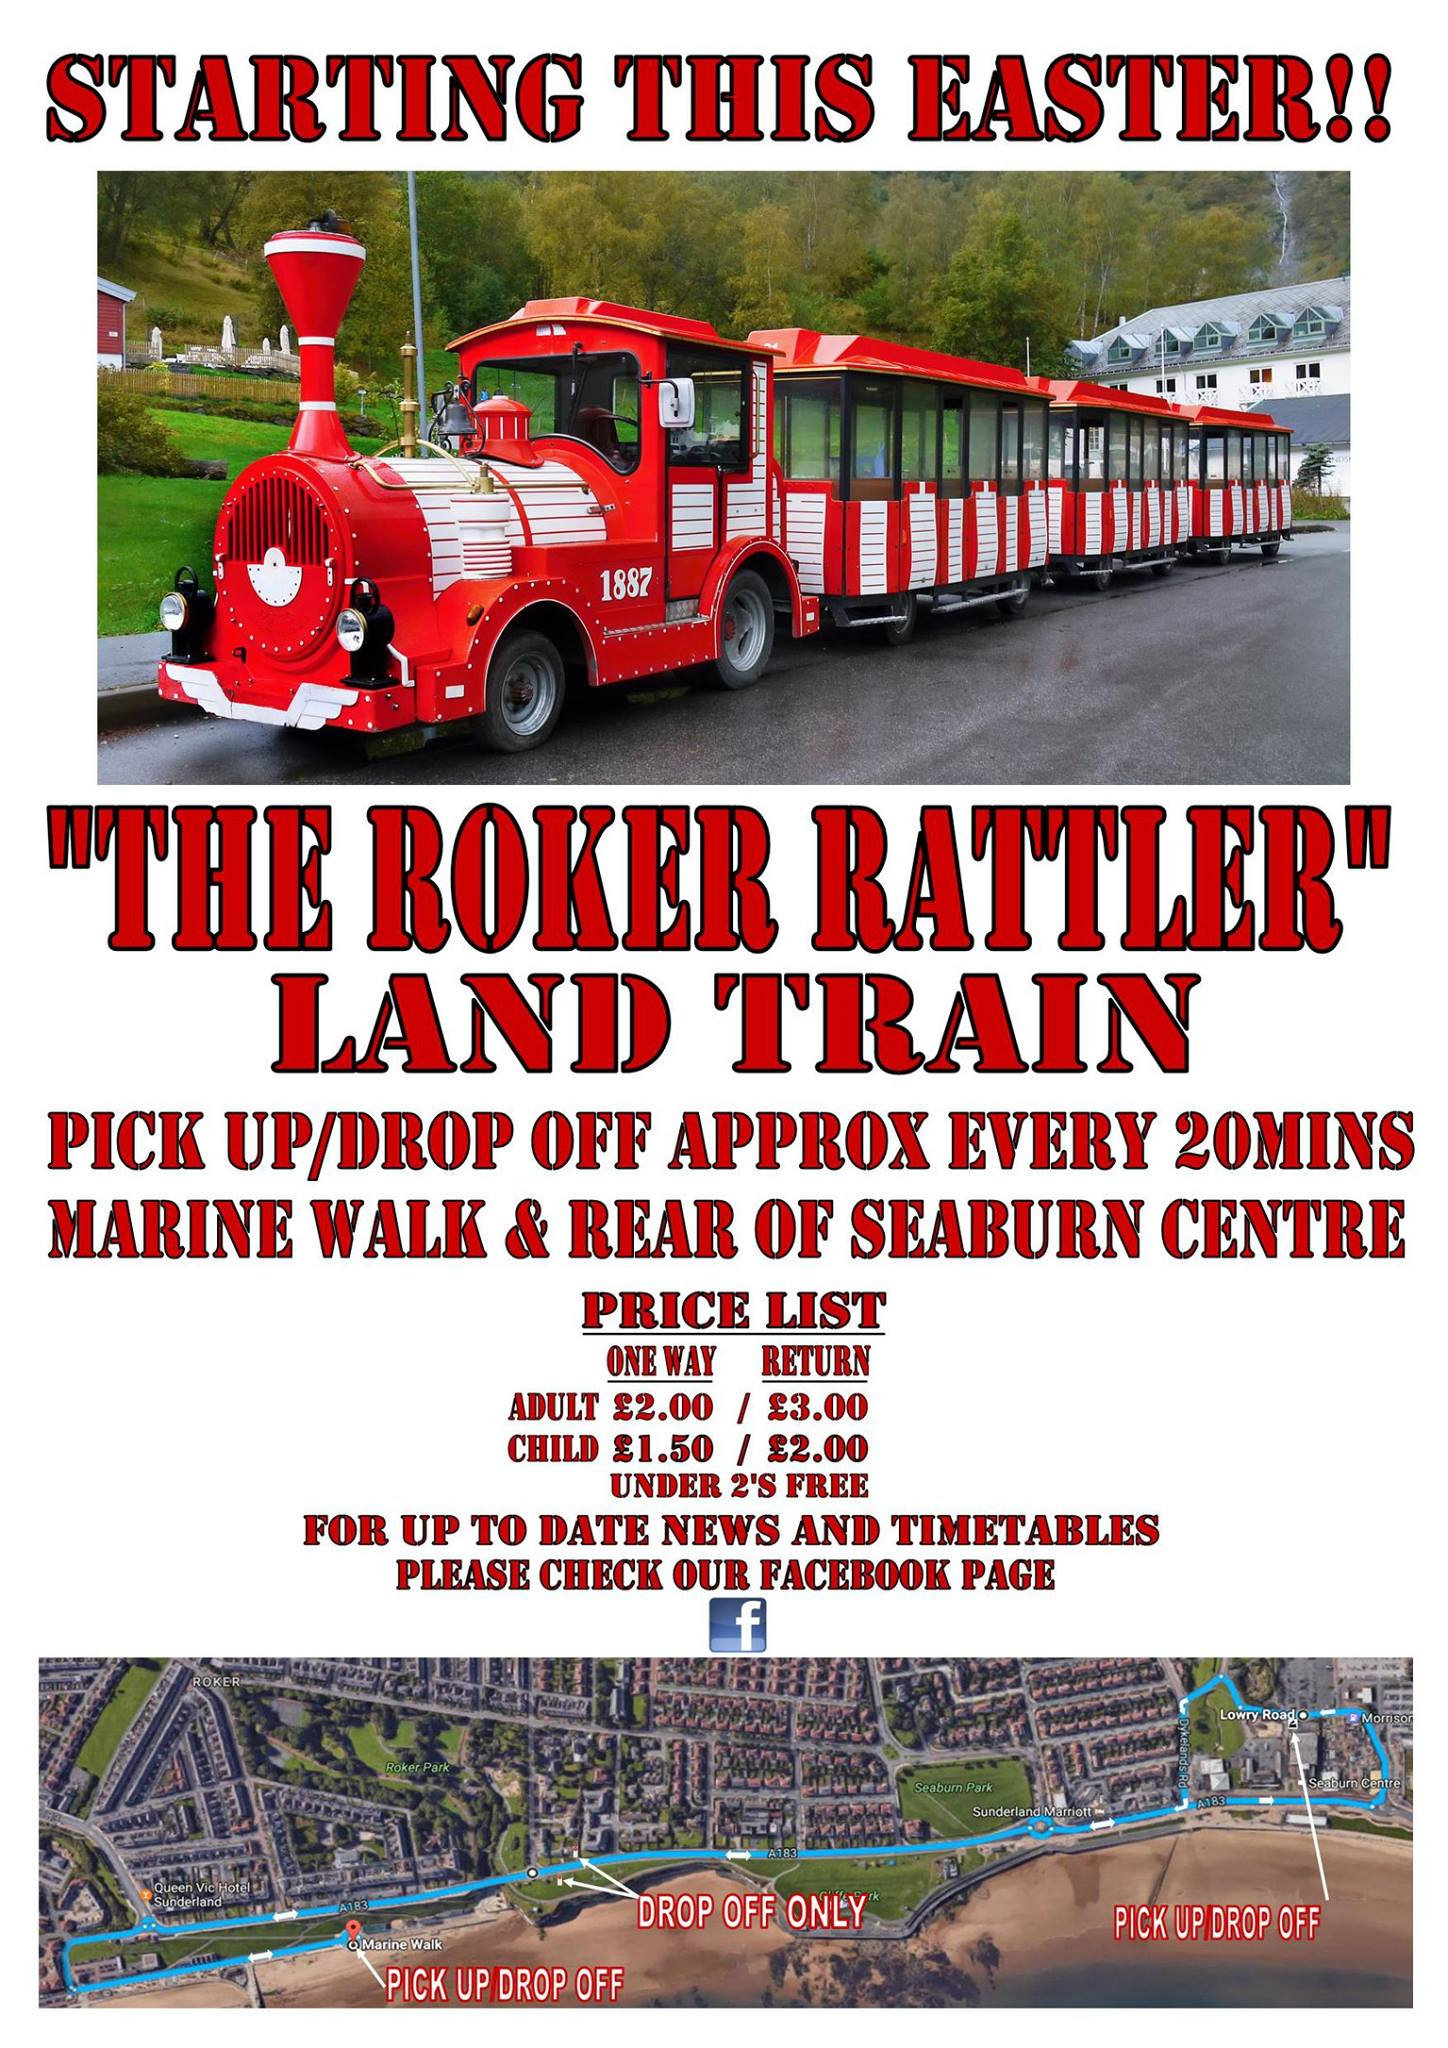 Roker Rattler Land Train Marine Walk Roker To Seaburn Sunderland SR6